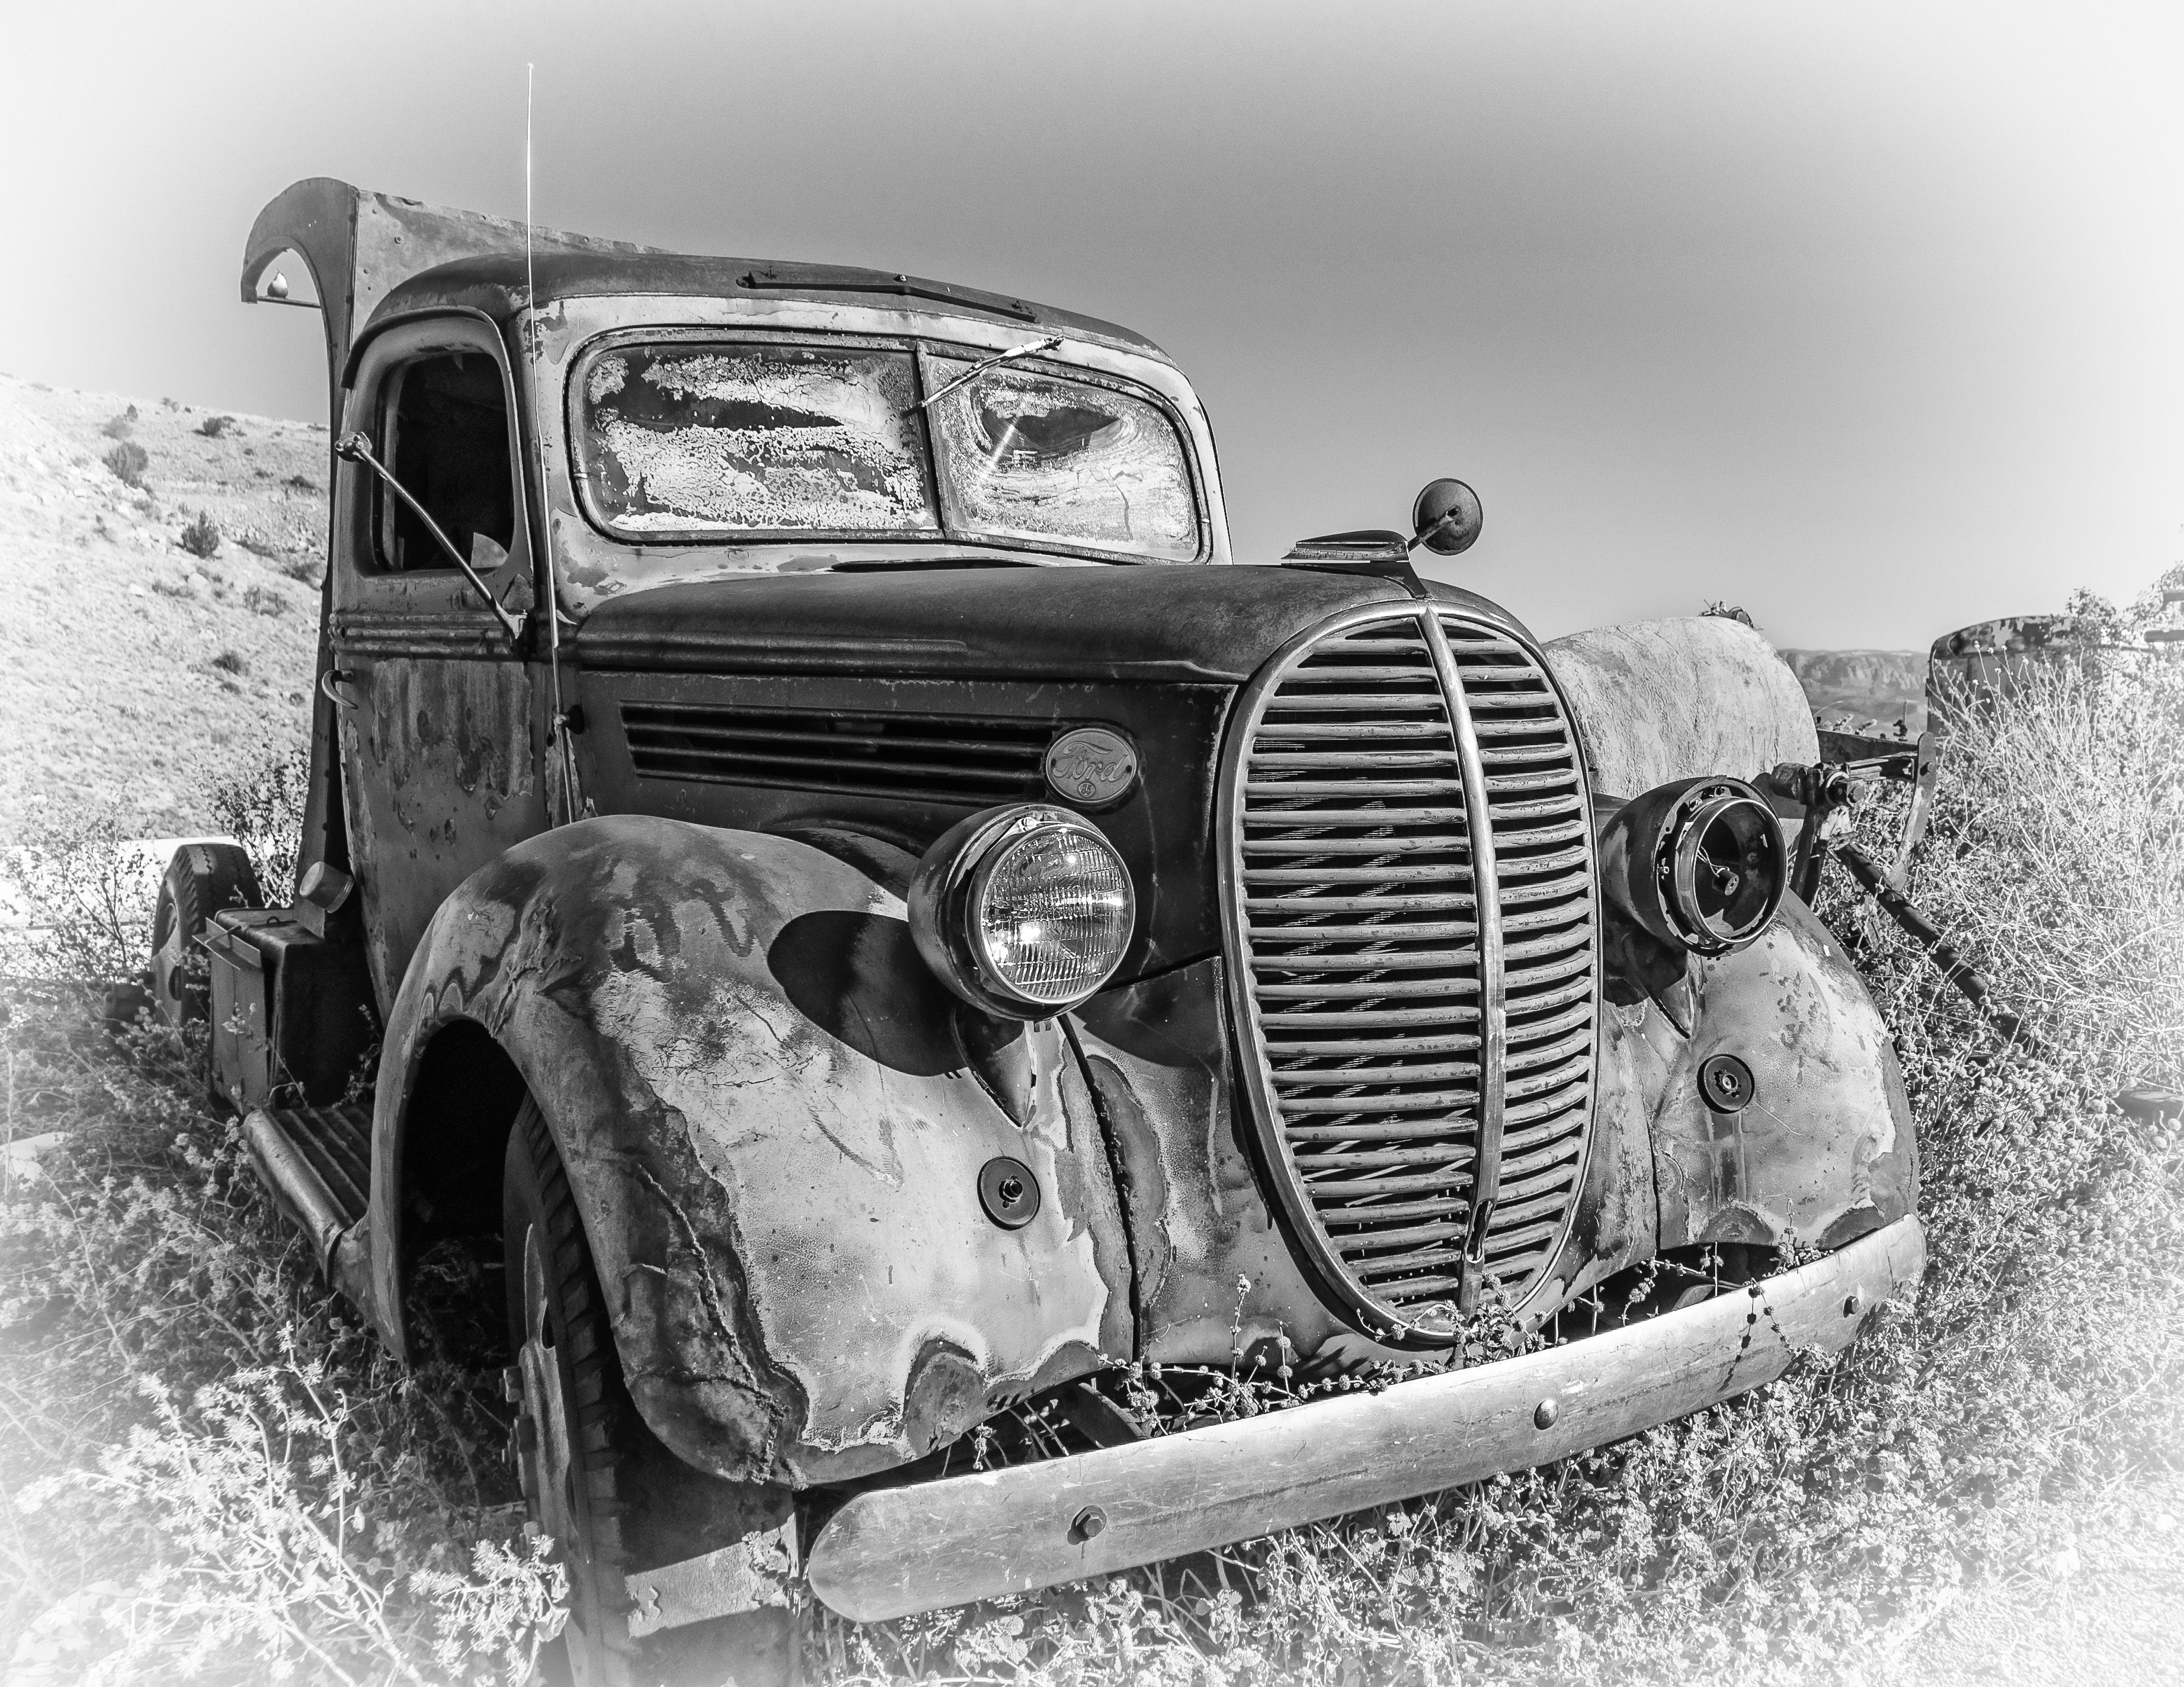 The Old Ford – Full of Character